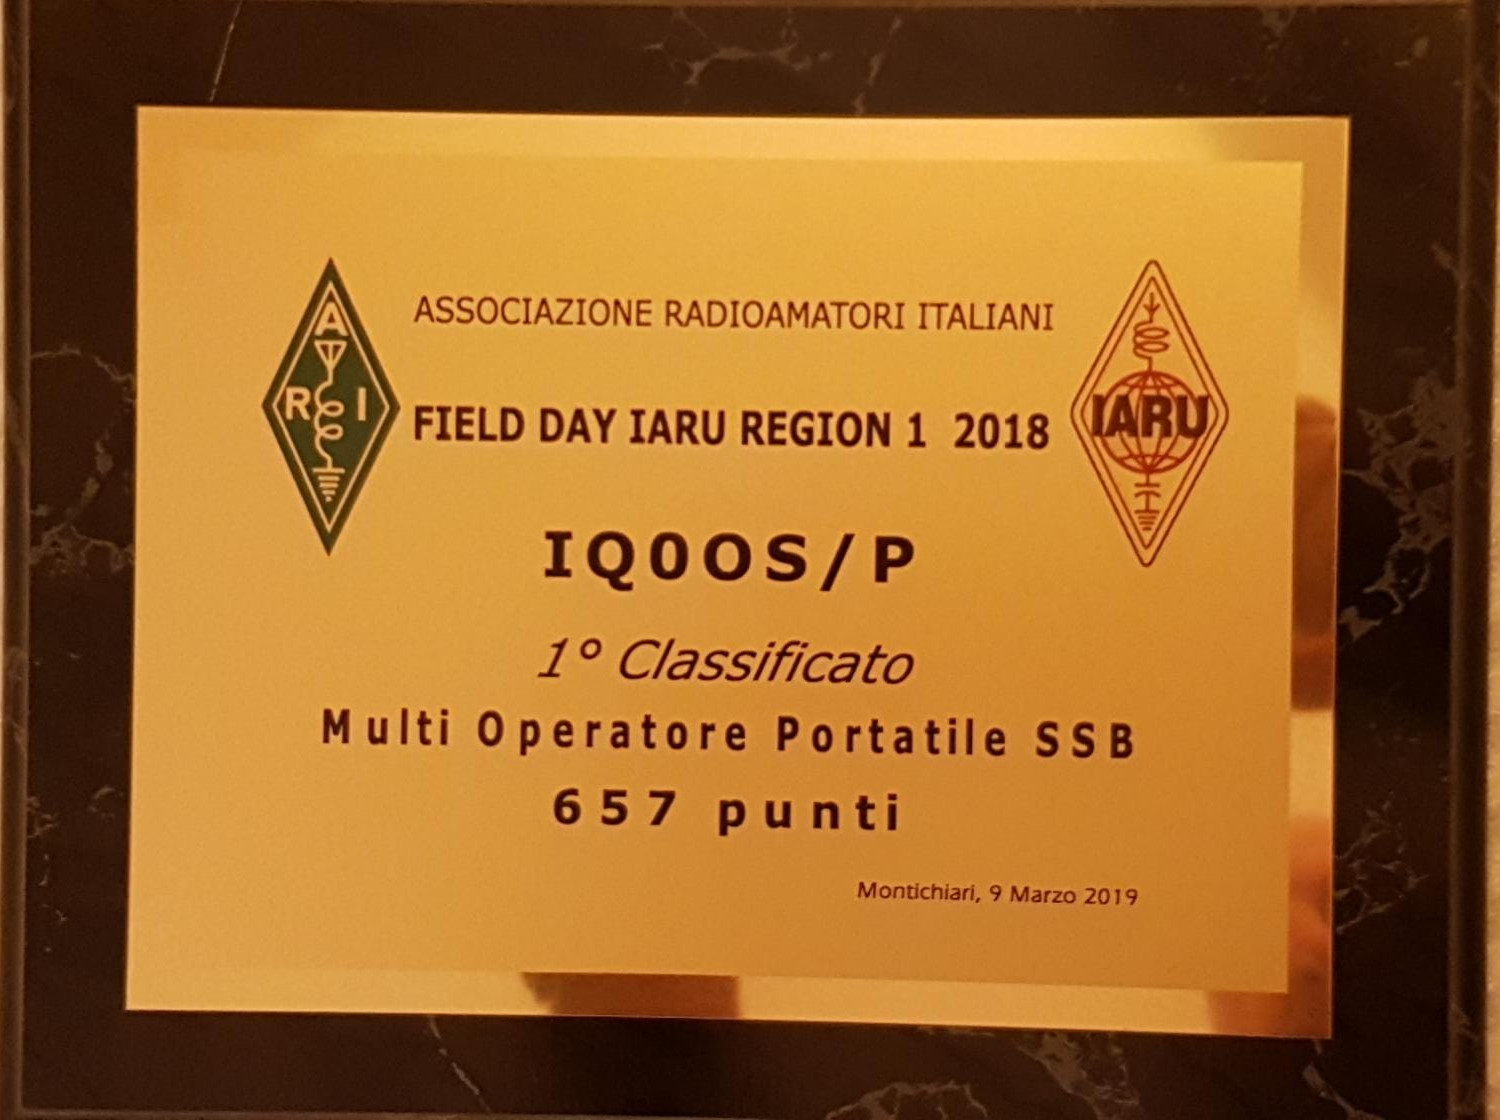 field day IARU Region 1 2018